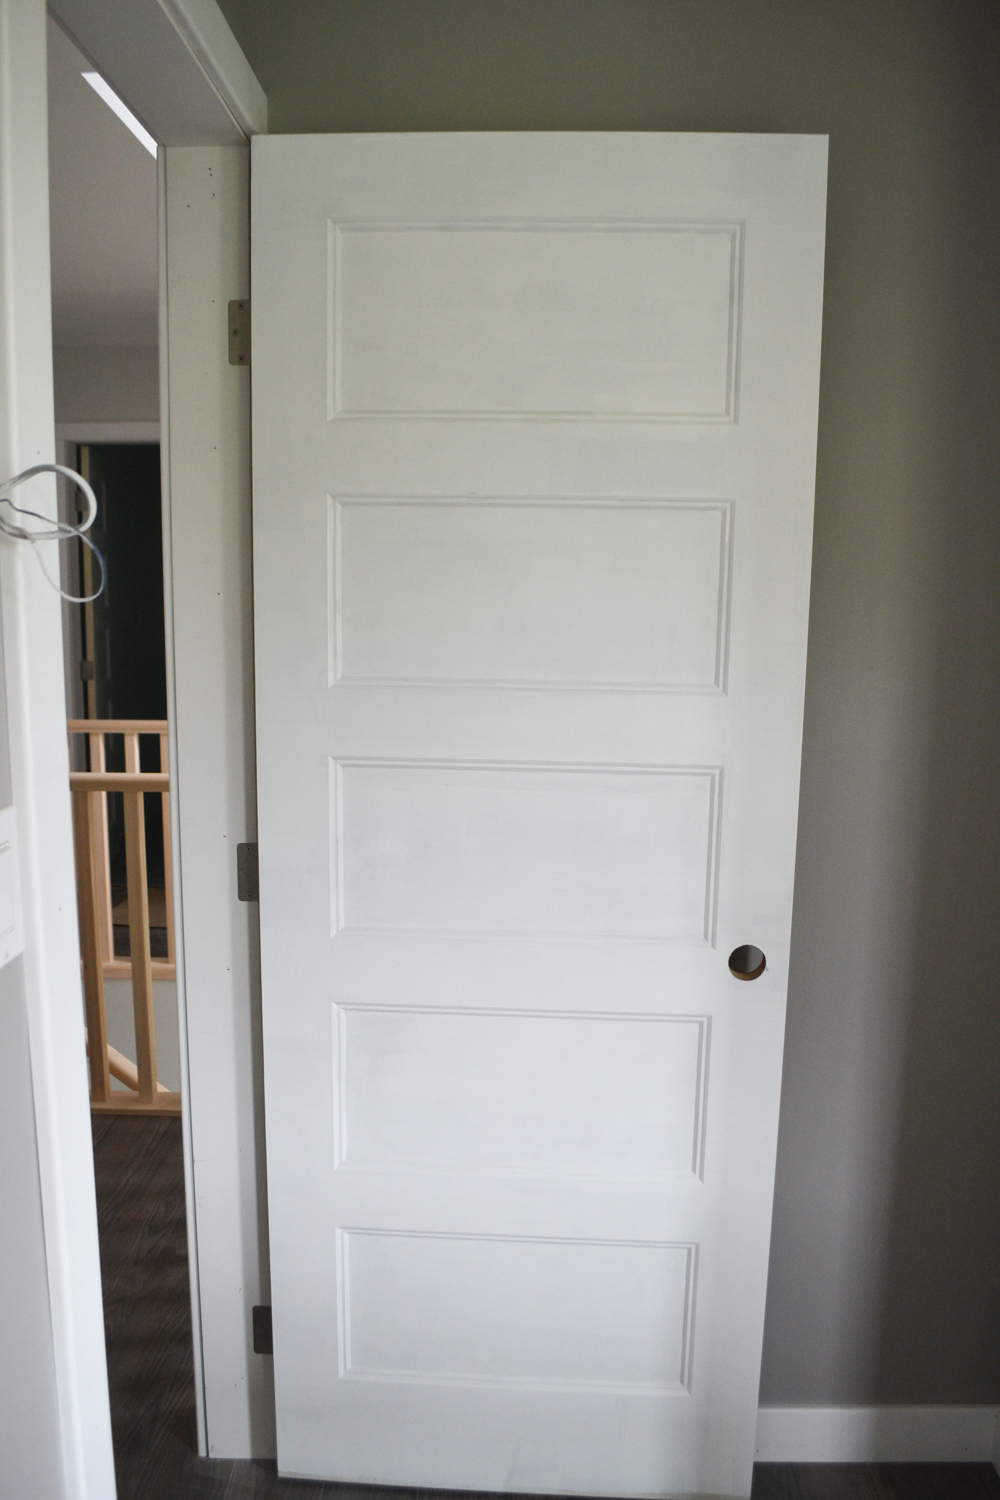 Painting Shaker Style Doors with a Streak-Free and Brush Stroke Free Finish - The : doors painting - Pezcame.Com